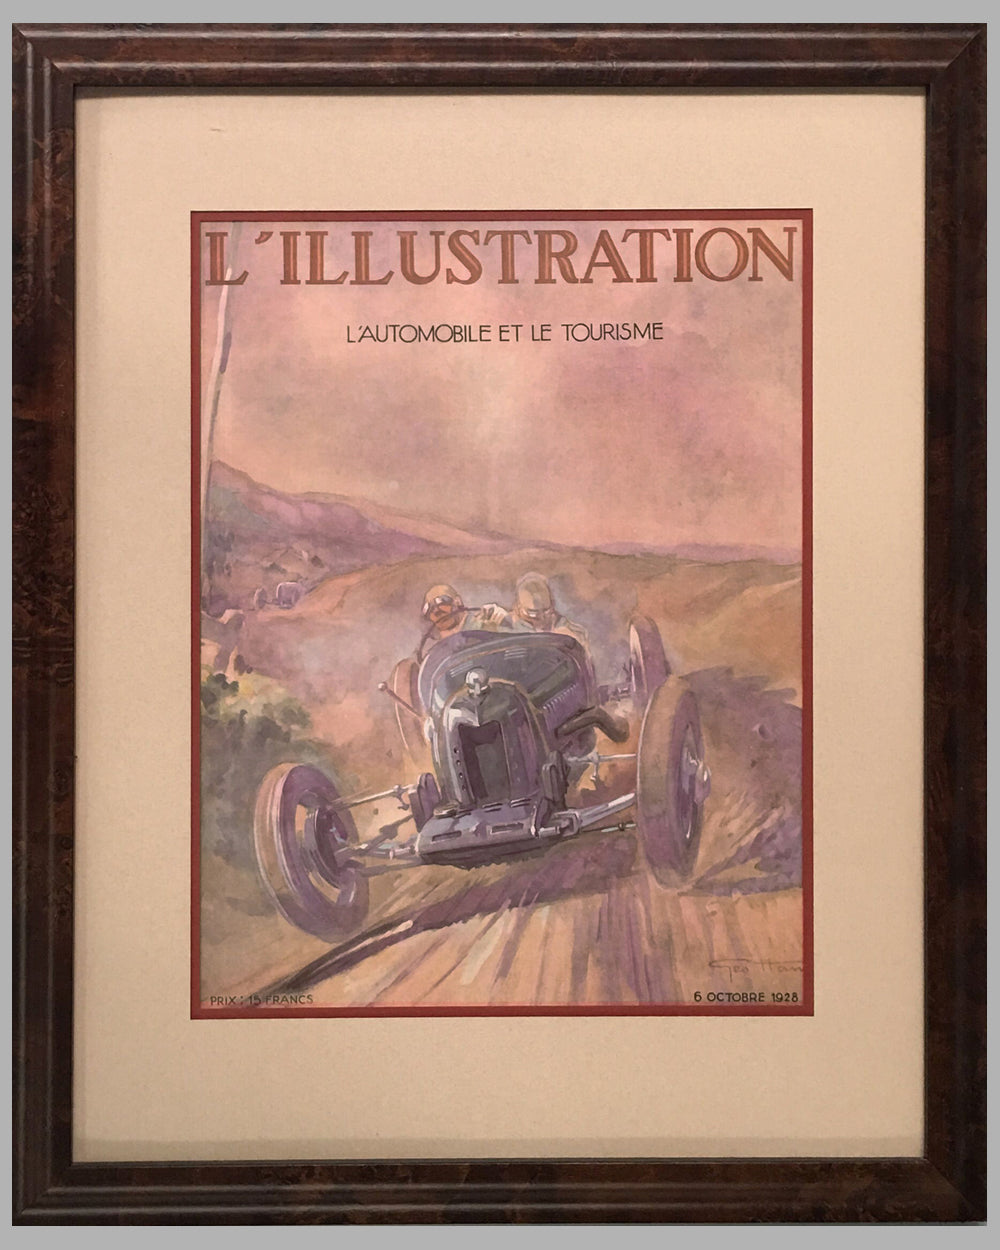 15 - Illustration Magazine original cover, October 1928, artwork by Geo Ham